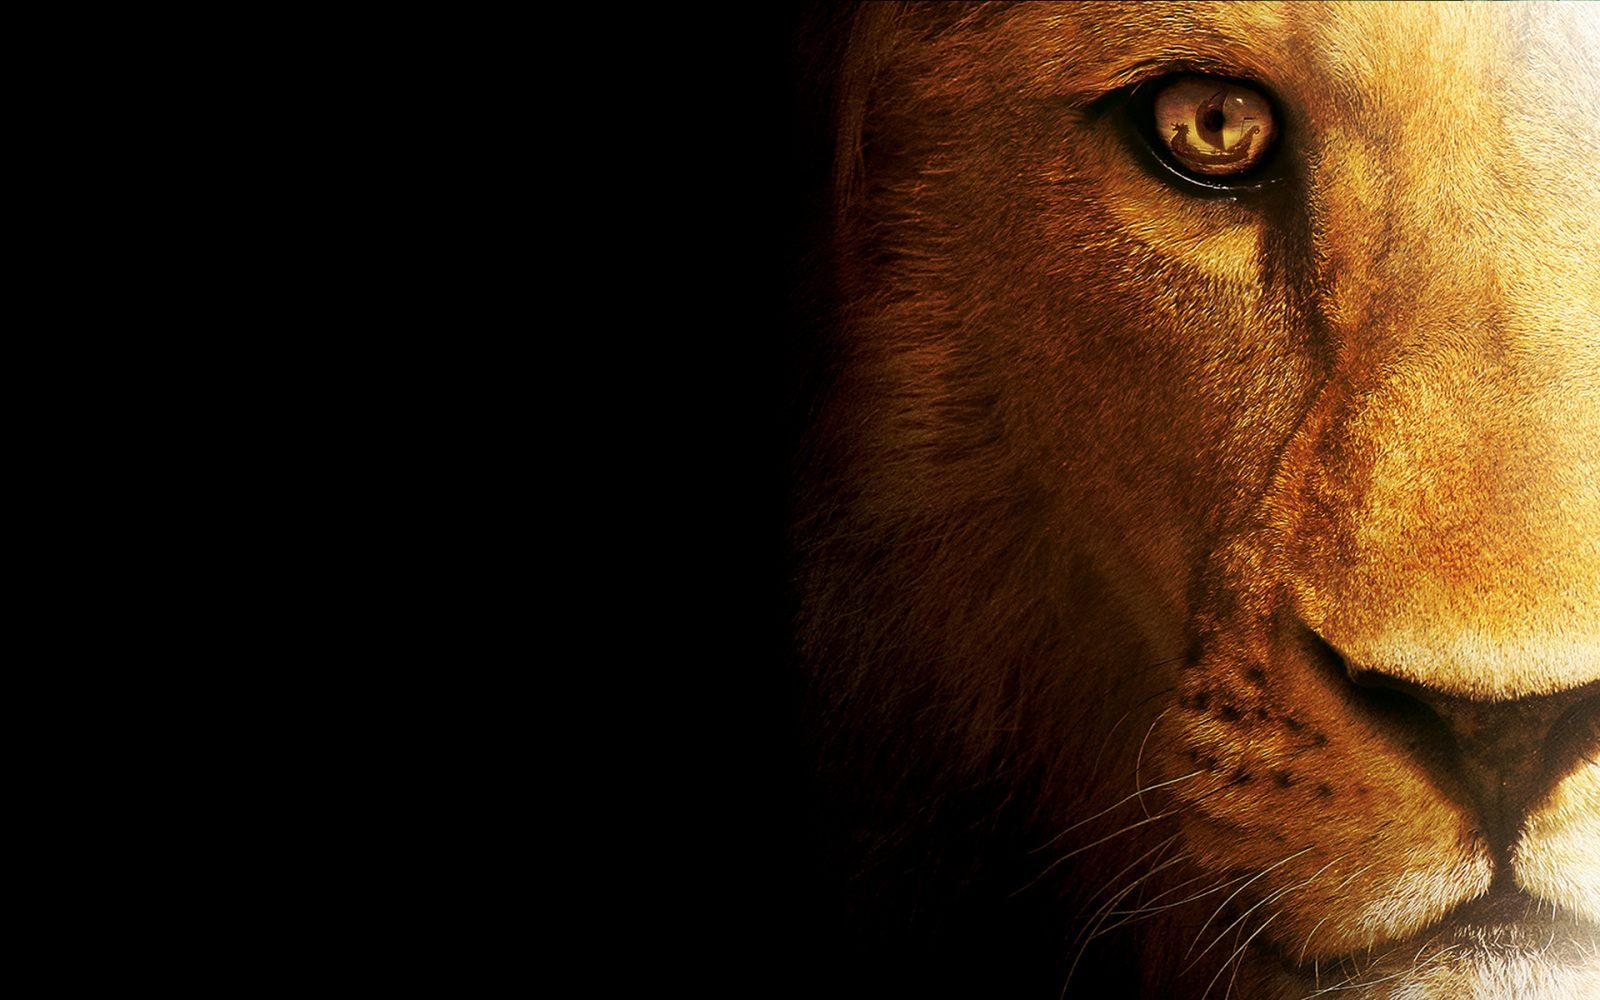 Resoluciones disponiblesRoaring Lion Hd Wallpapers 1920x1080